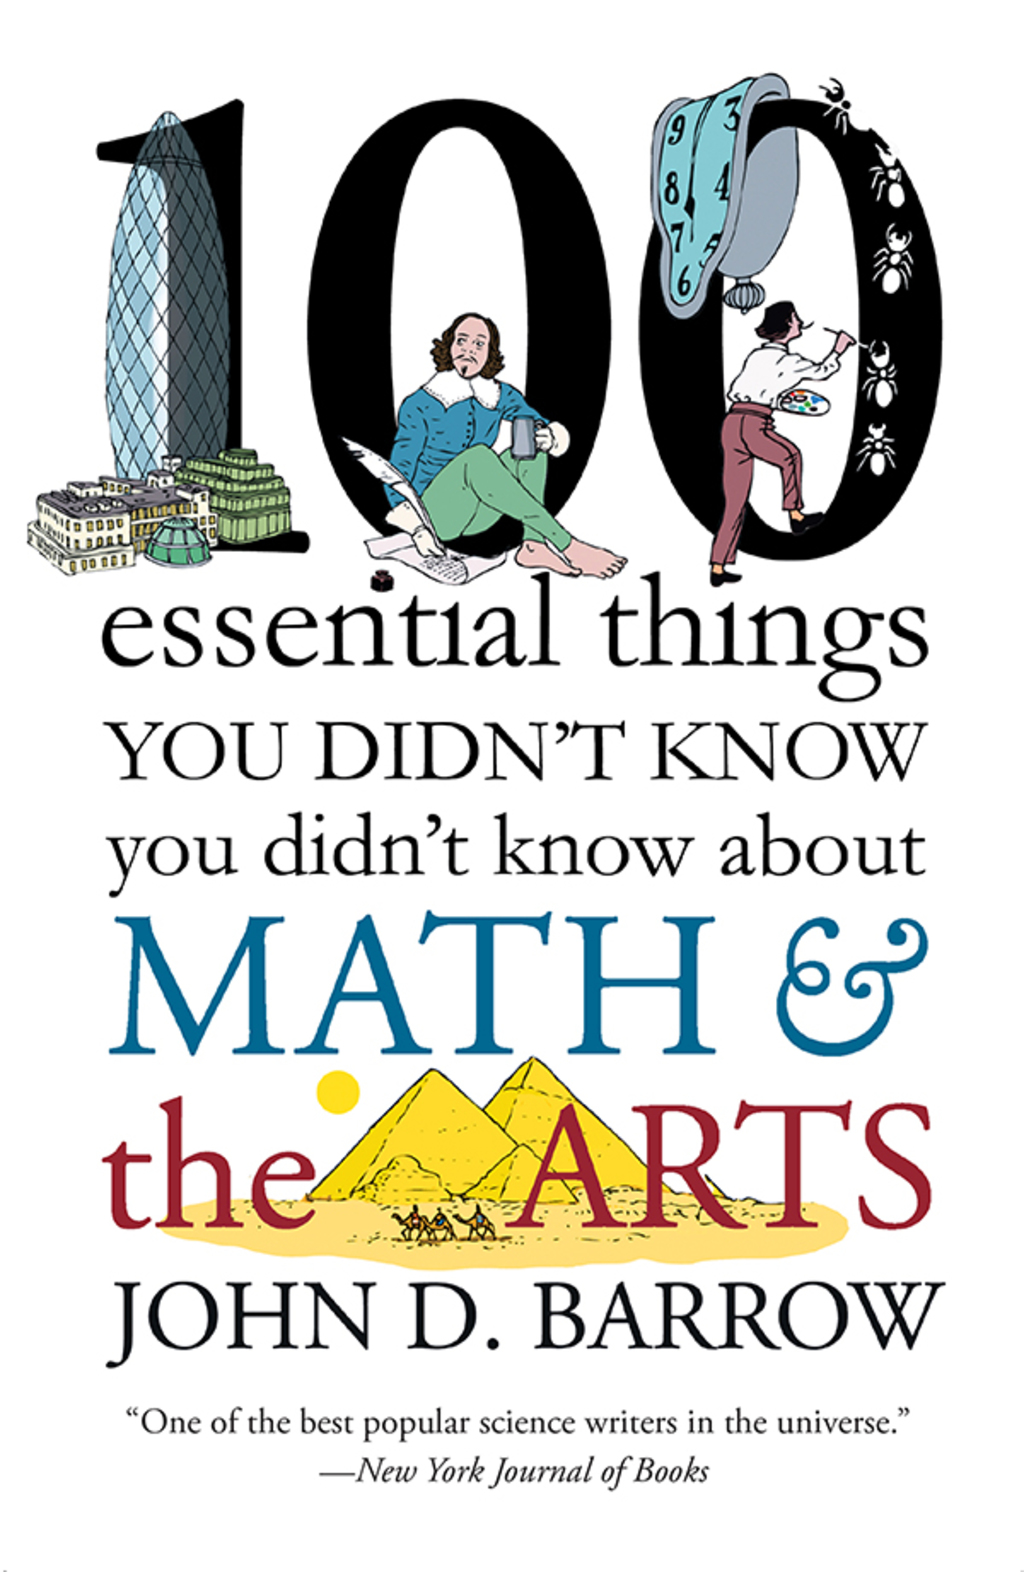 100 Essential Things You Didn't Know You Didnt Know about Math and the Arts (ebook) eBooks